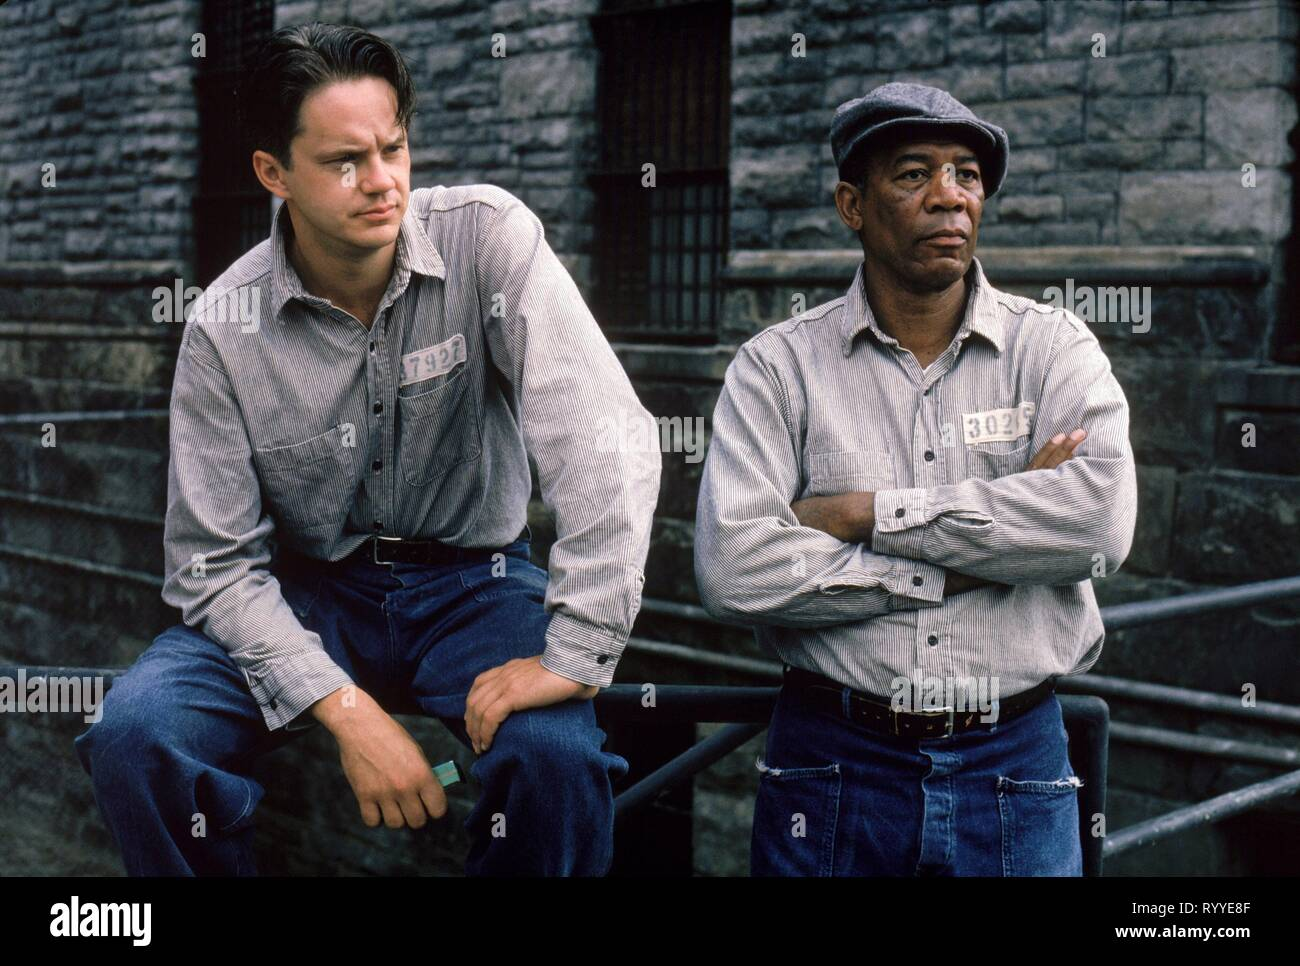 ROBBINS,FREEMAN, THE SHAWSHANK REDEMPTION, 1994 Stock Photo